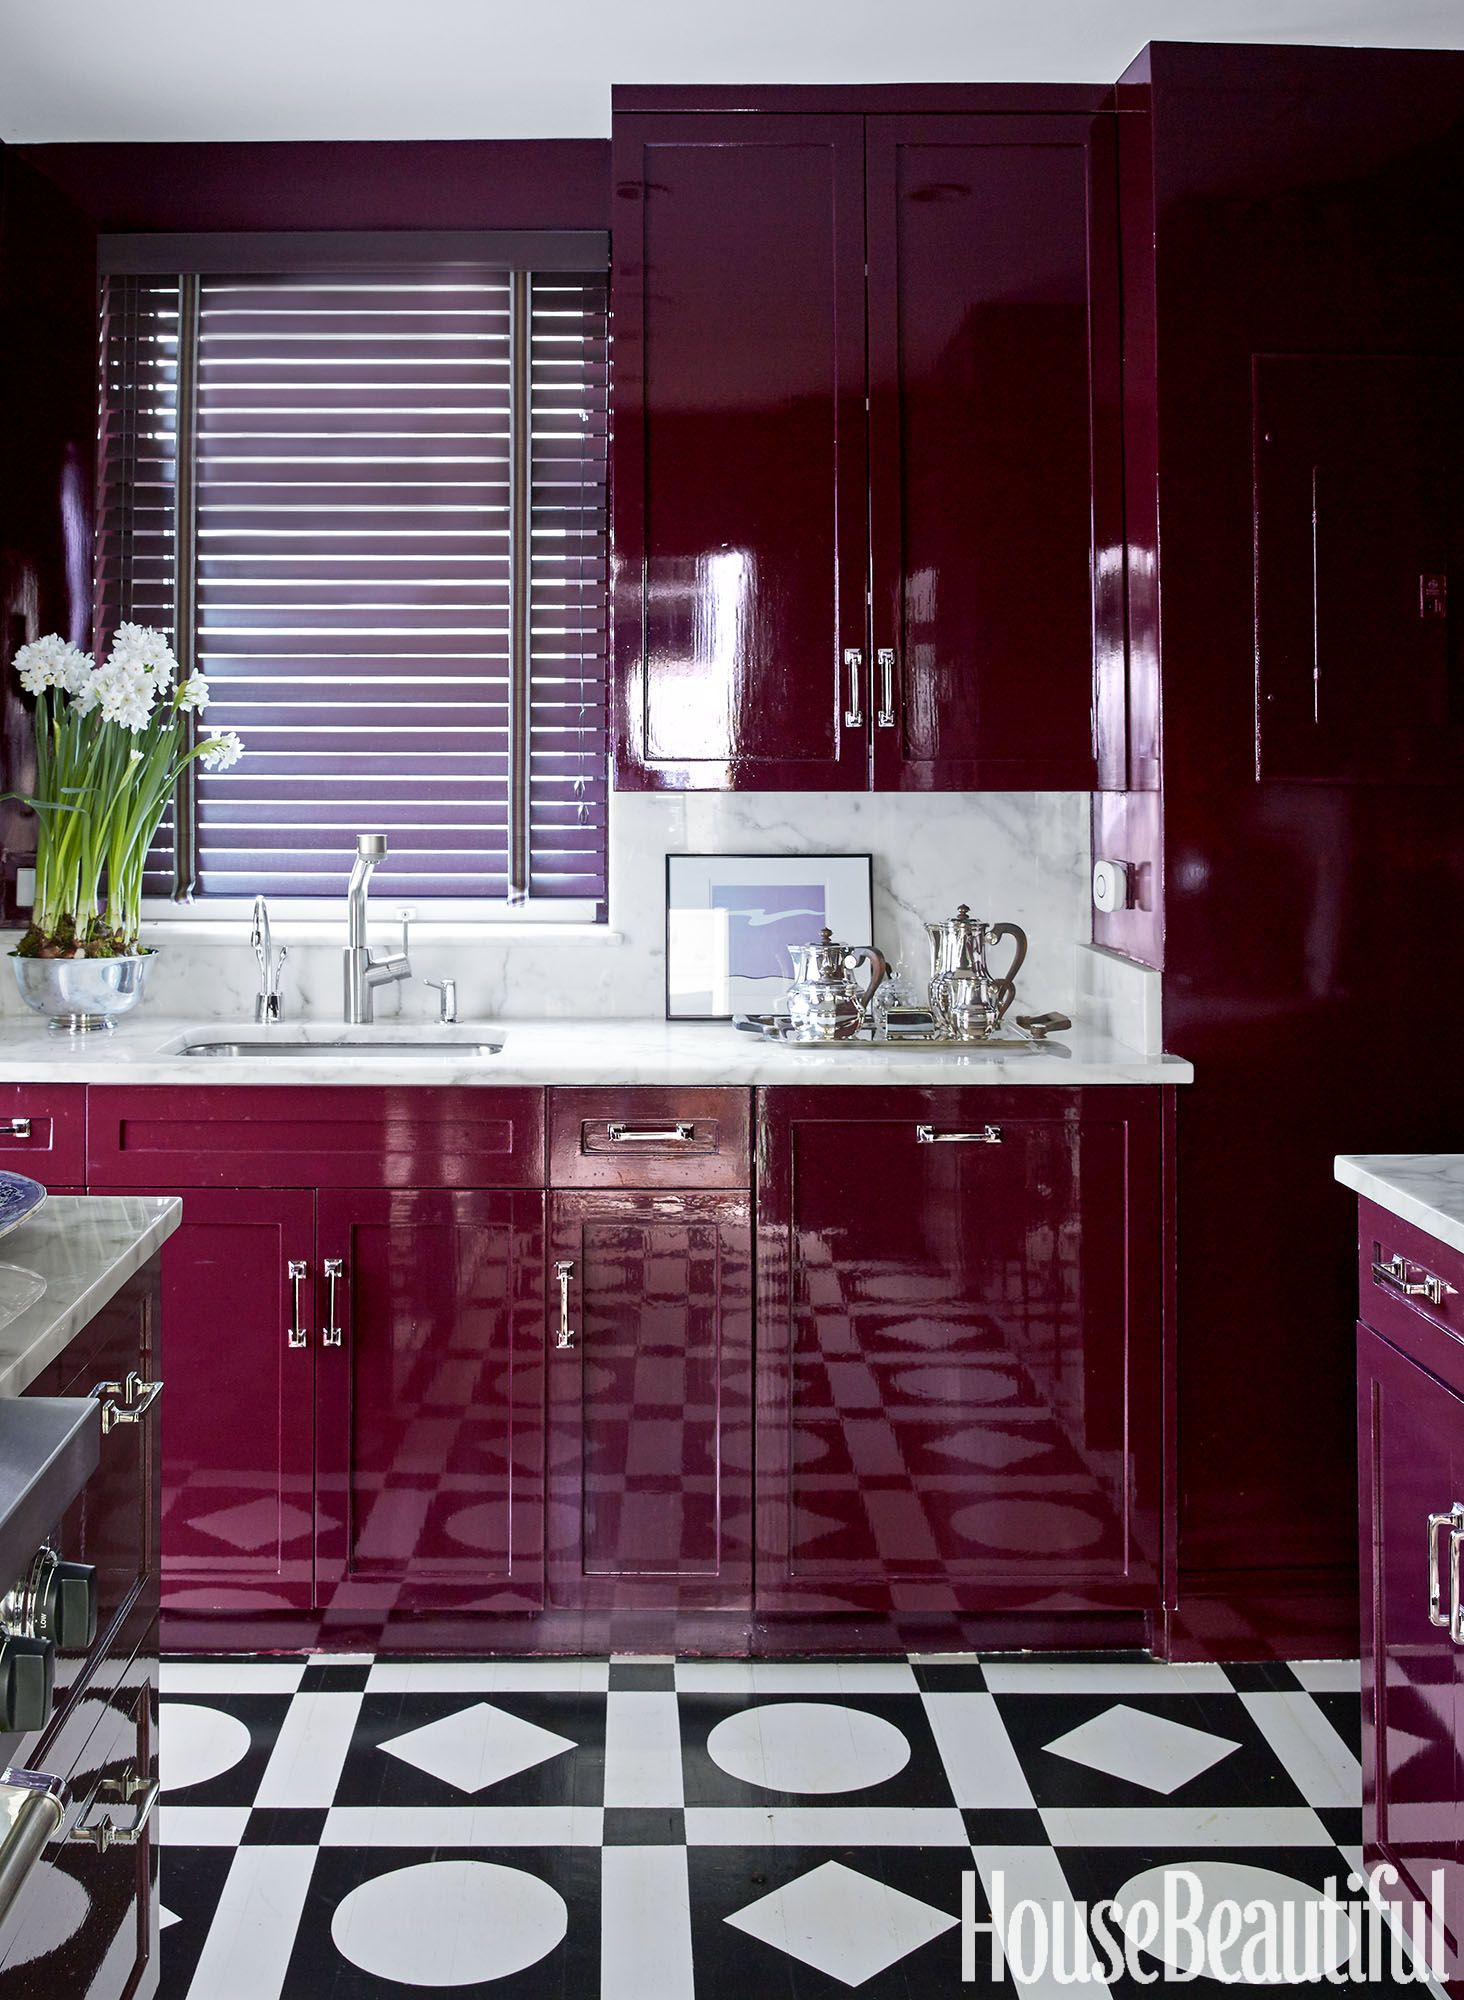 Our Hollandlac Brilliant In A Wine Red Kitchen Designed By Nick